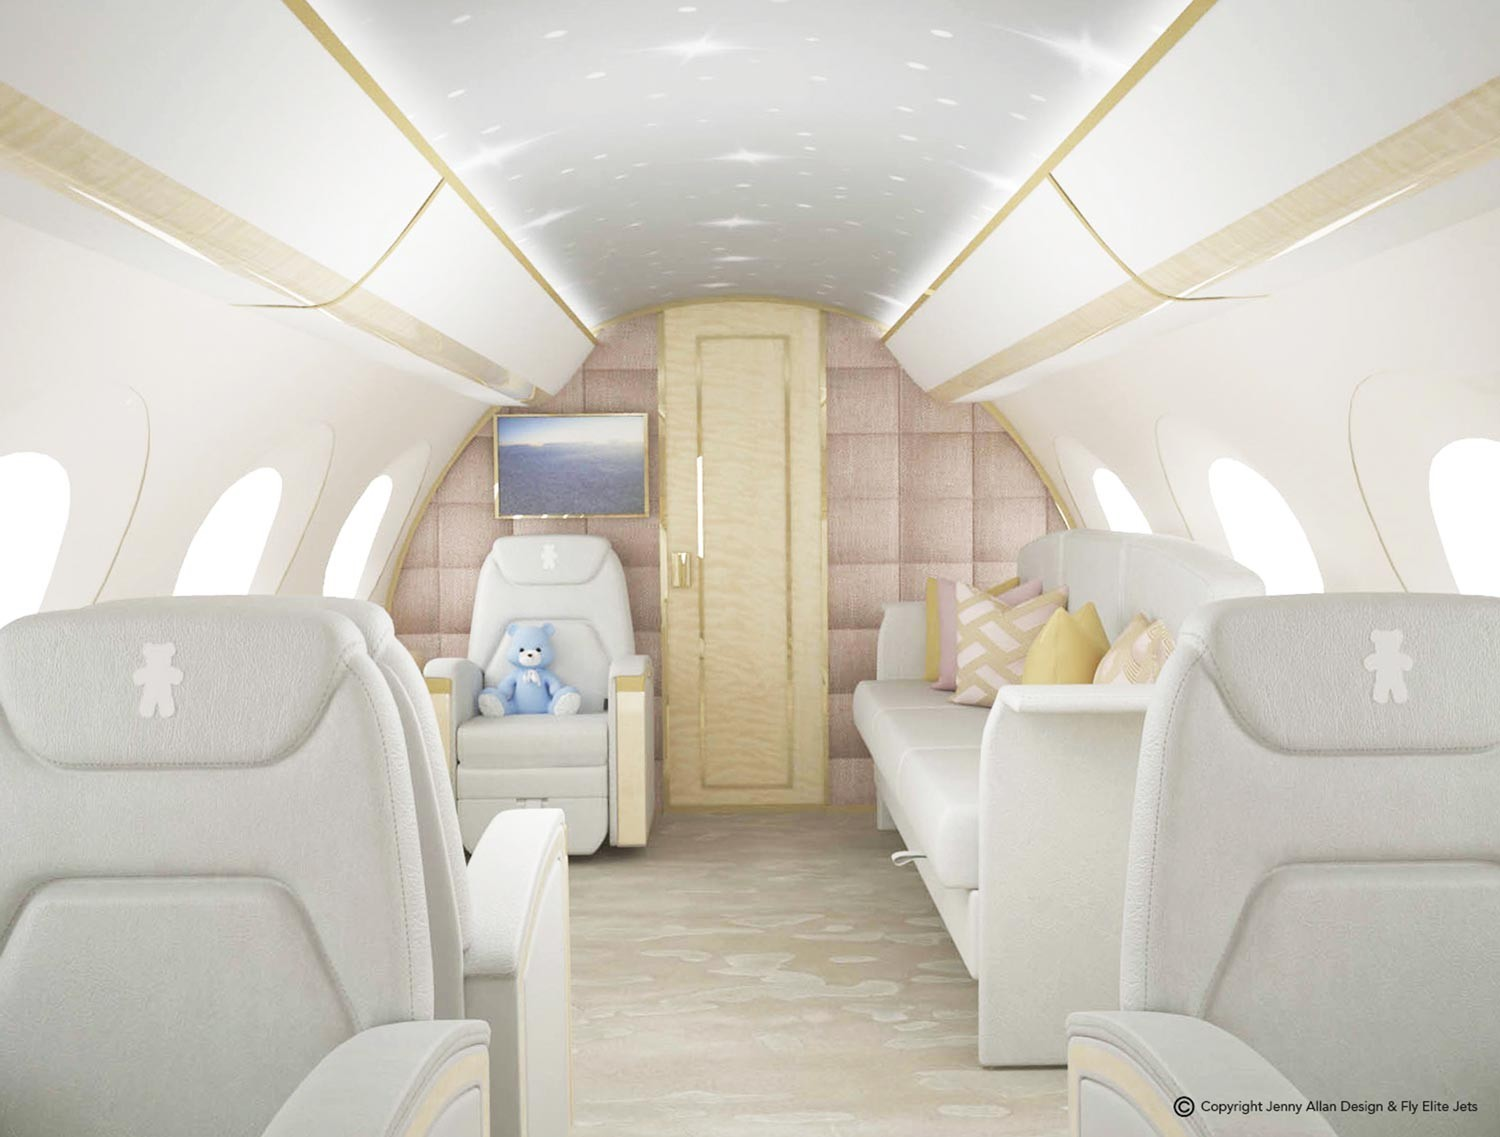 FlyEliteJets With Its World's First Flying Nursery